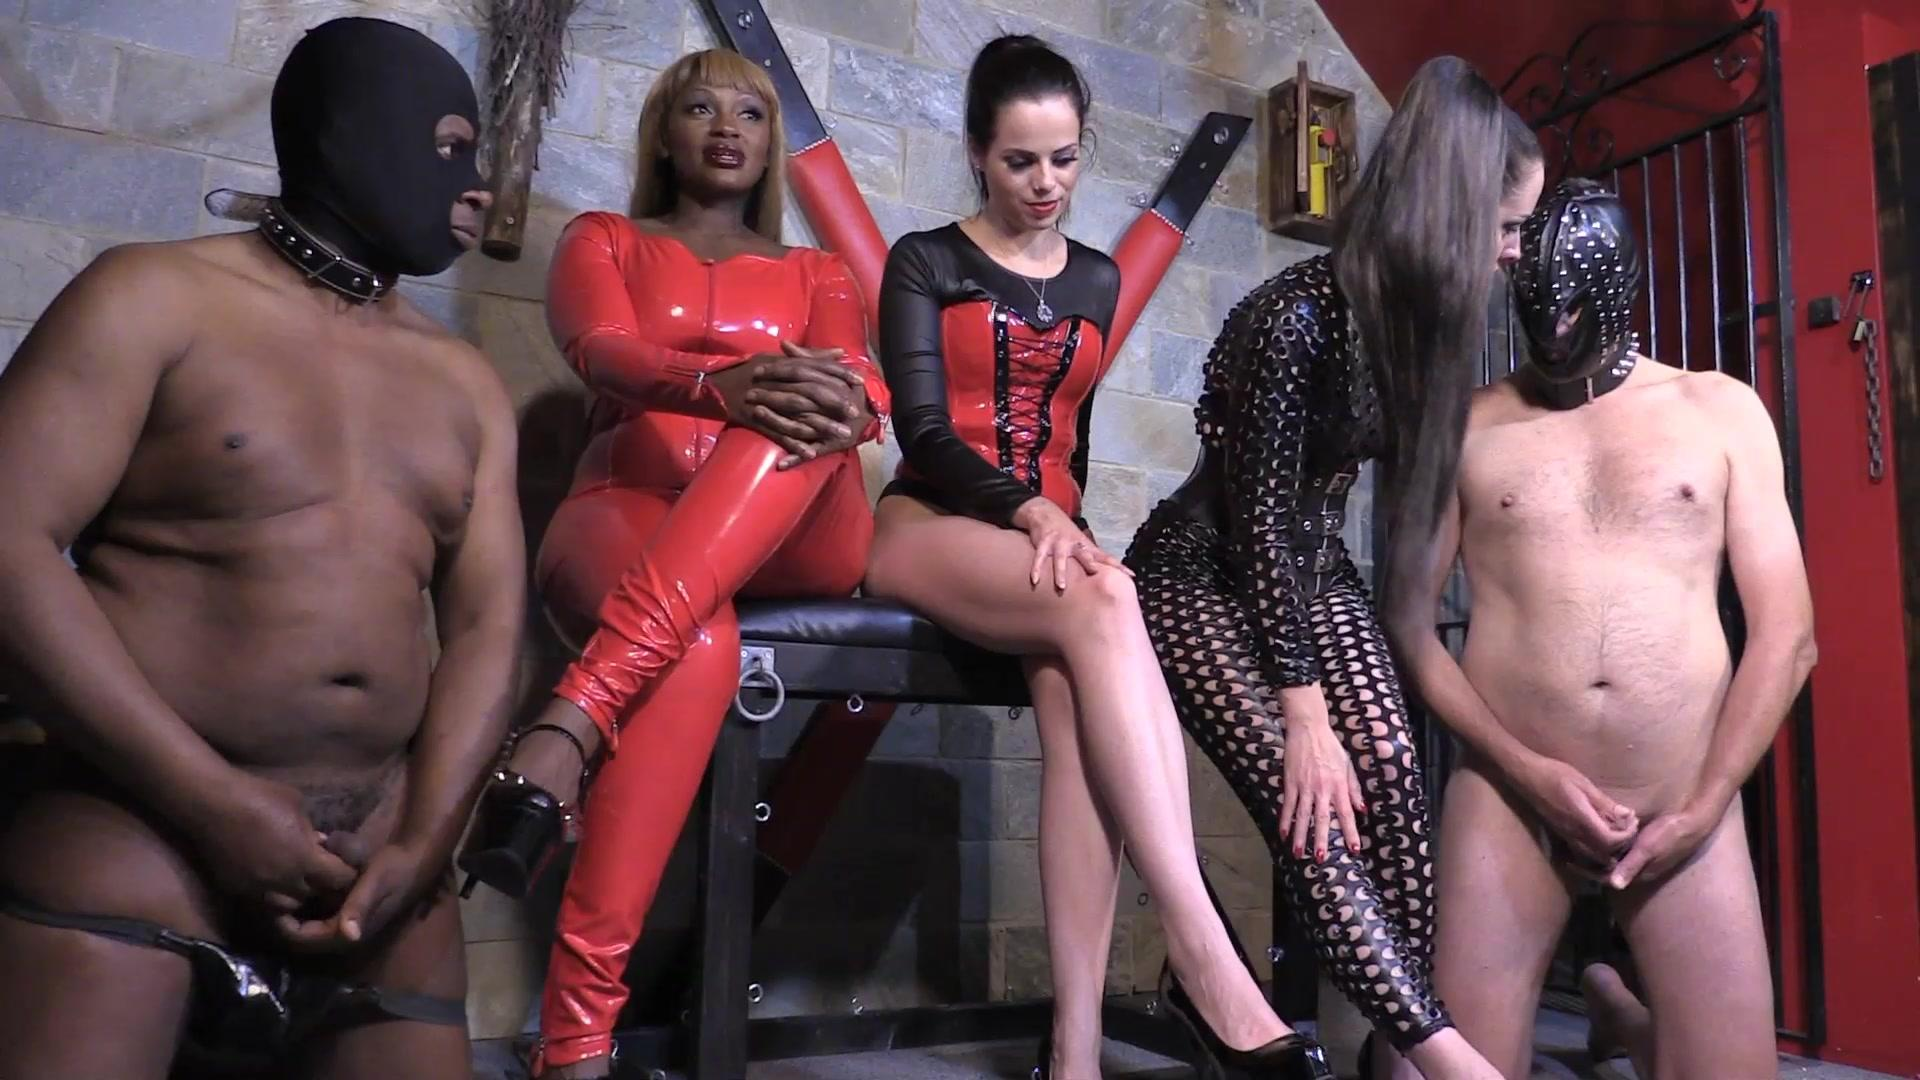 Lady Bellatrix, Mistress Tiffany, Mistress Ava - Cum Contest (HD mp4) 0